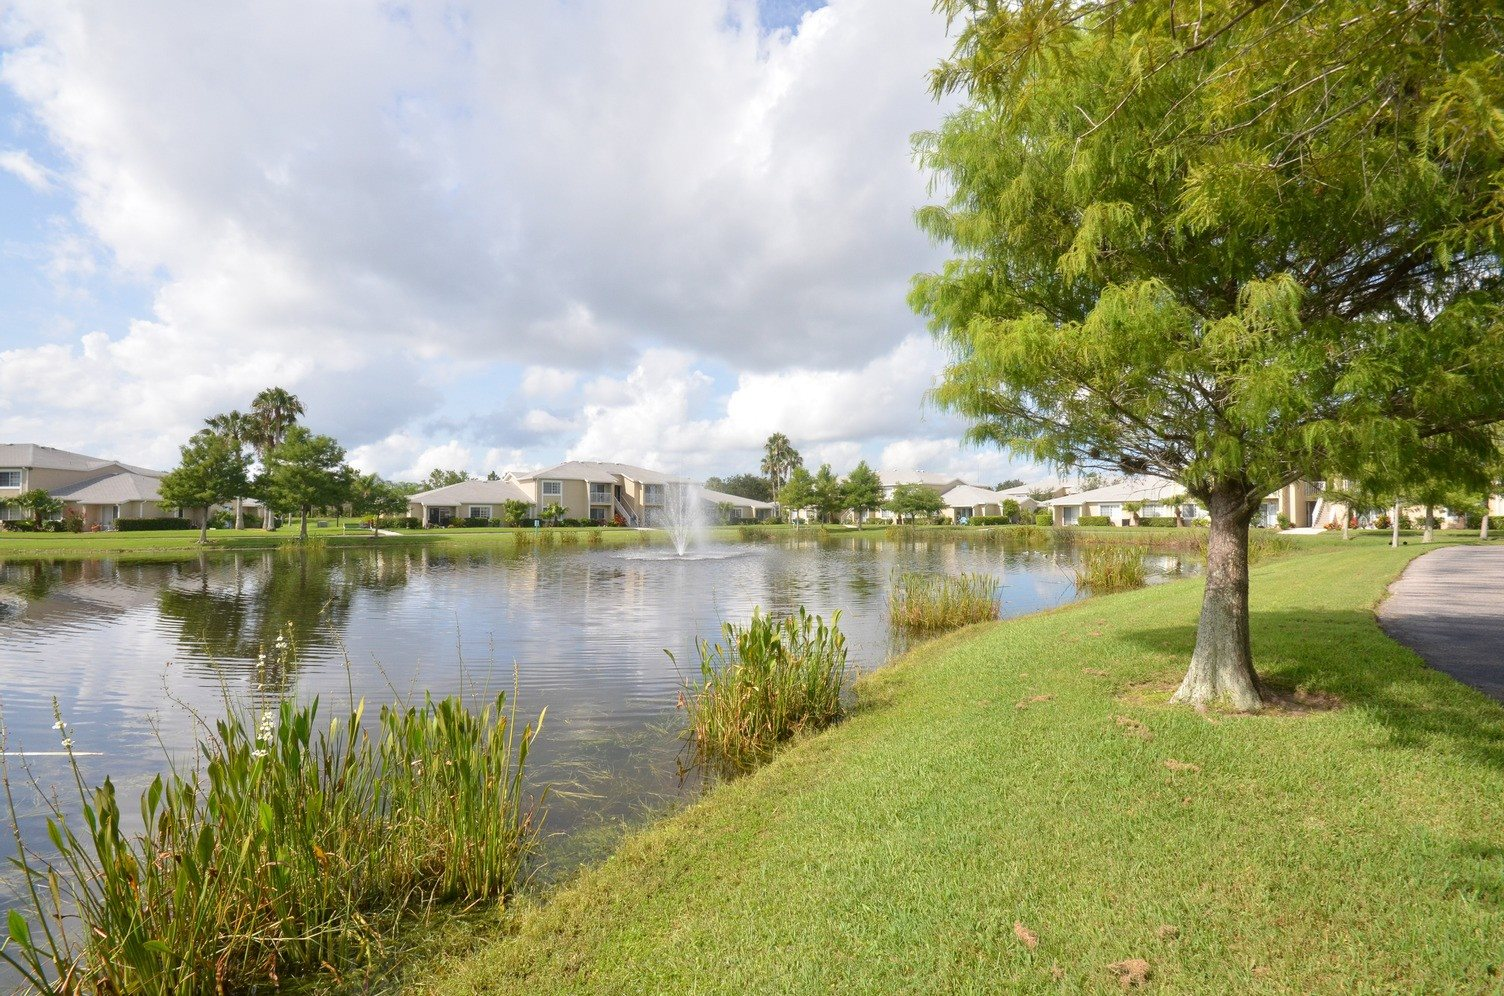 Waterfront View with Trees and Building Exteriors